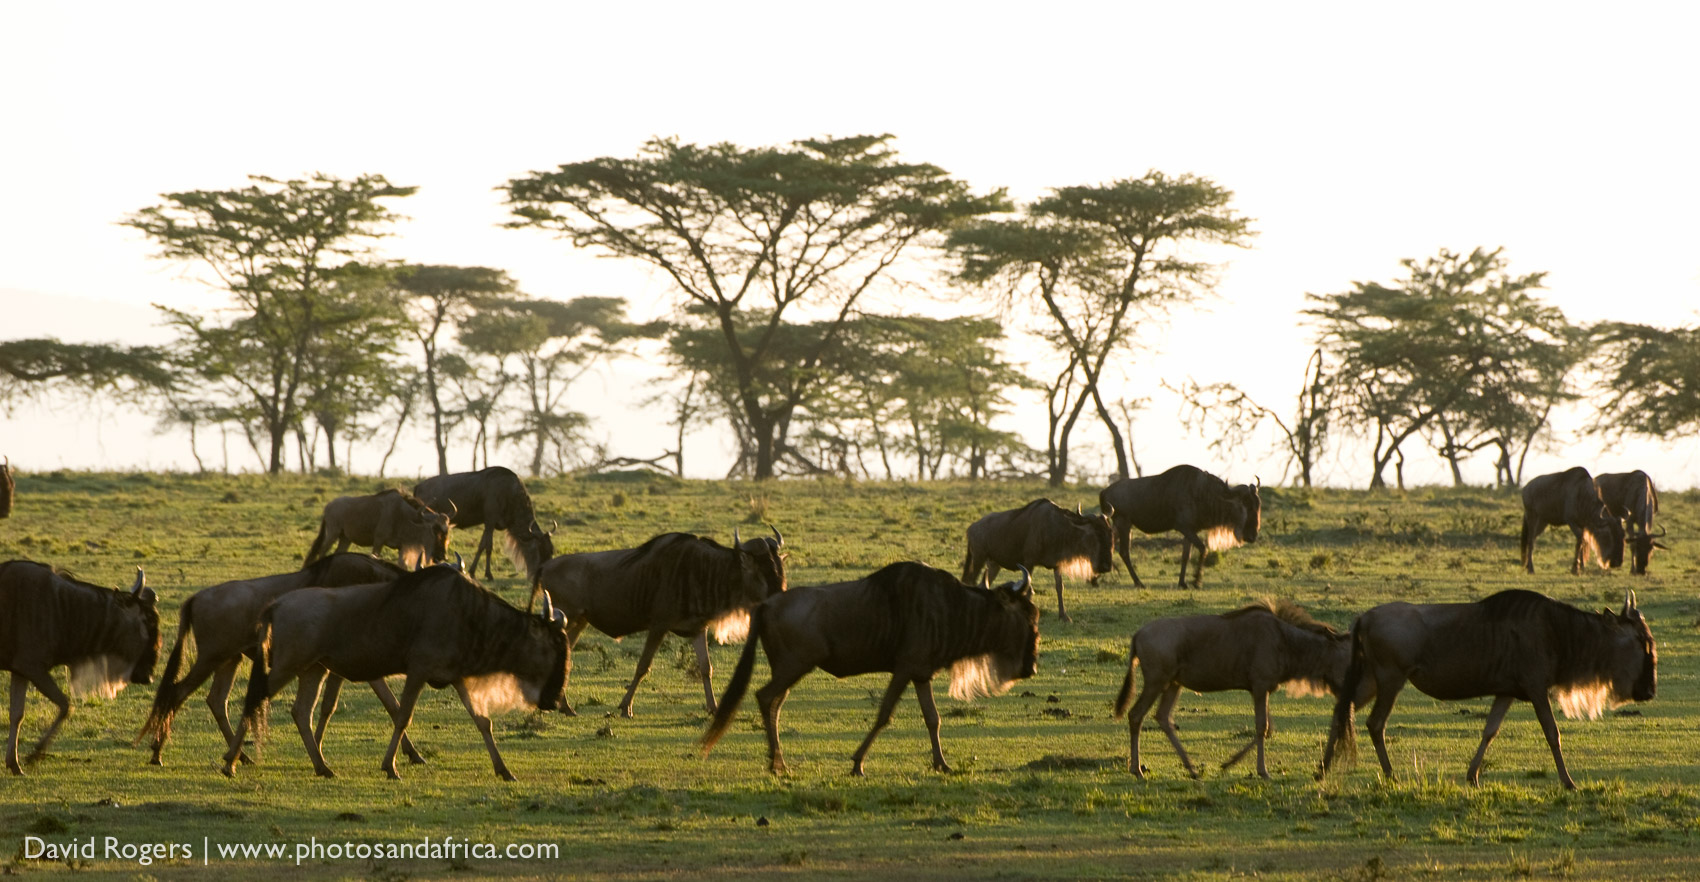 Kenya, Masai Mara National Park, A group of Wildebeest walking in the wild ©David Rogers